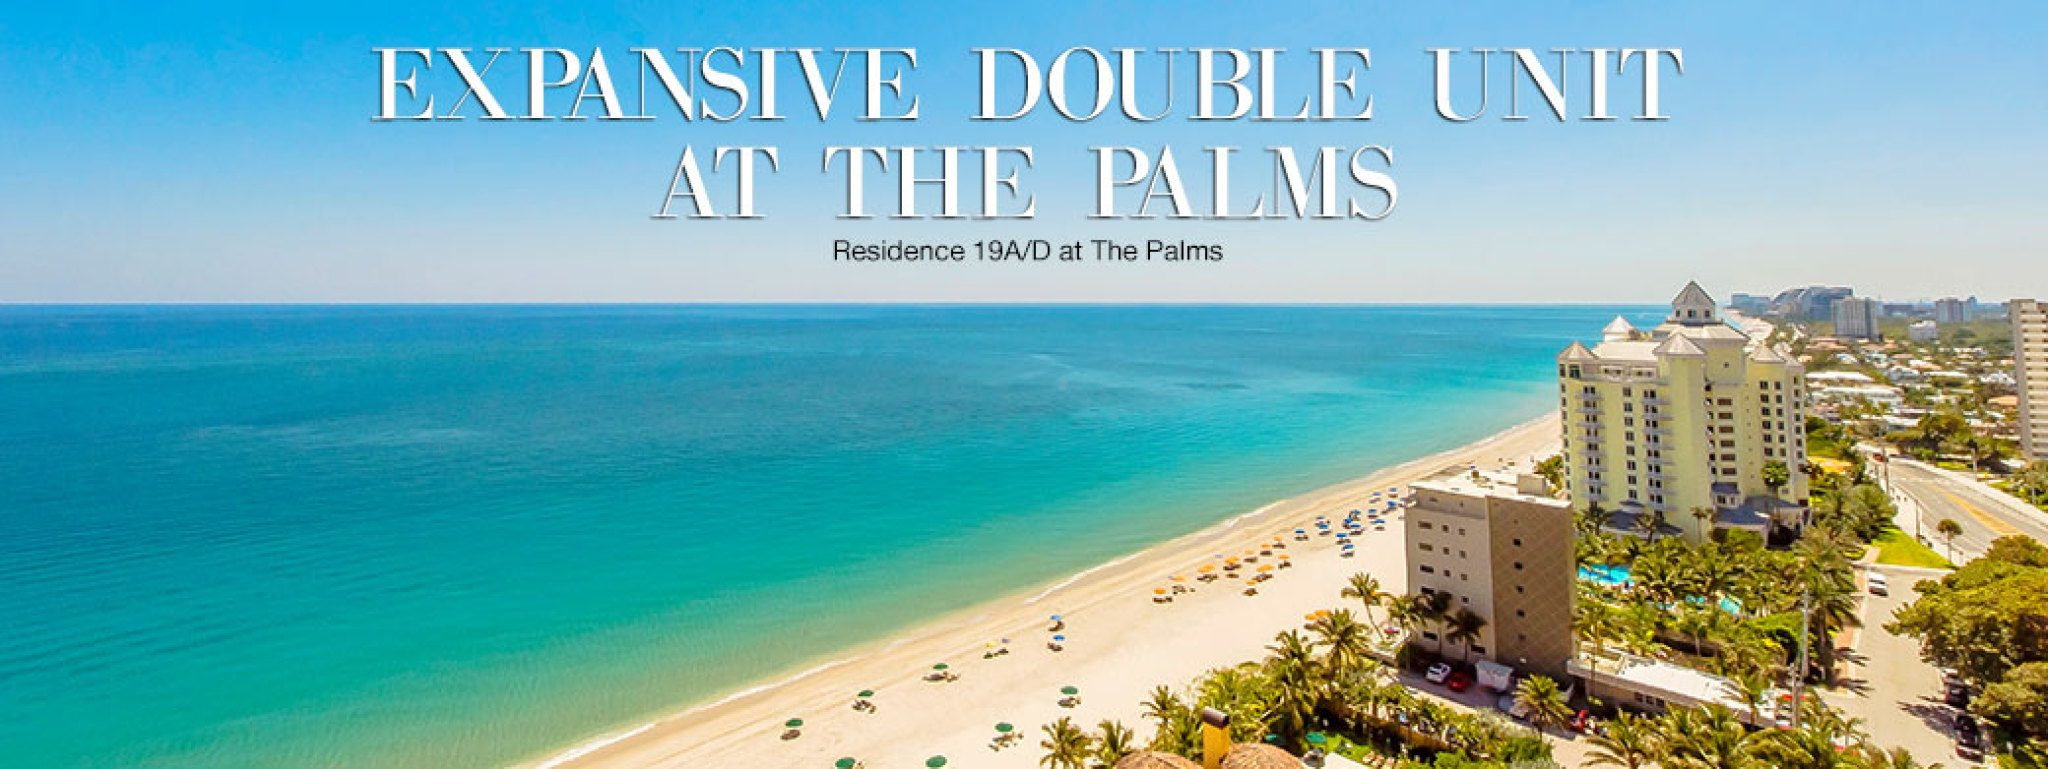 The Palms 19A/D Widescreen Image